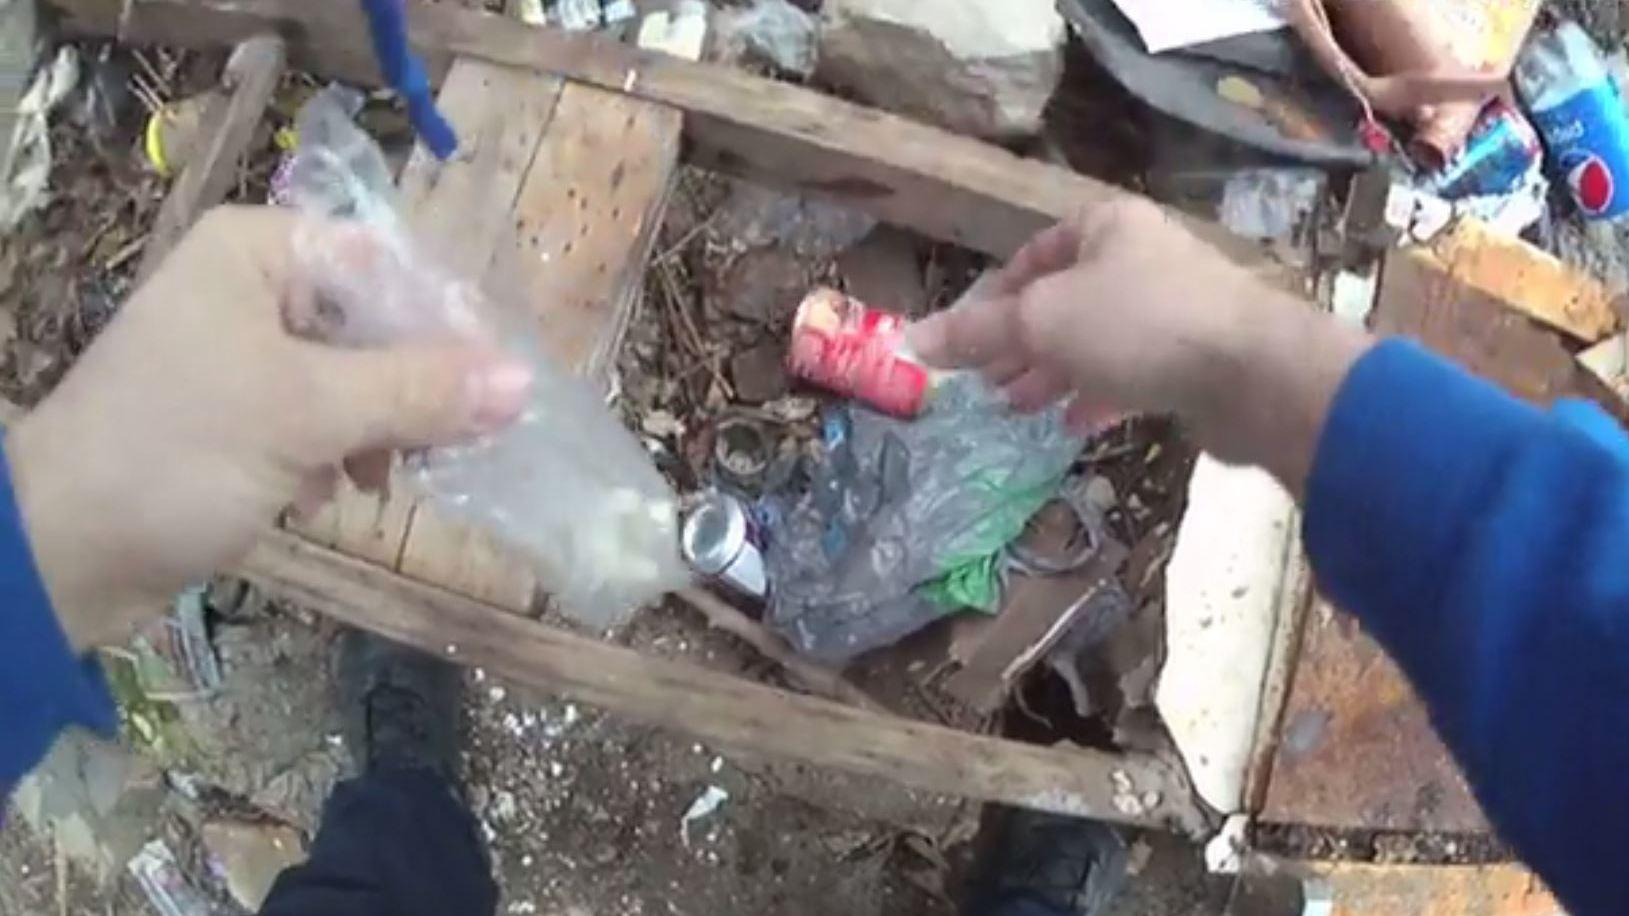 Body camera footage shows officer planting drugs, public defender says